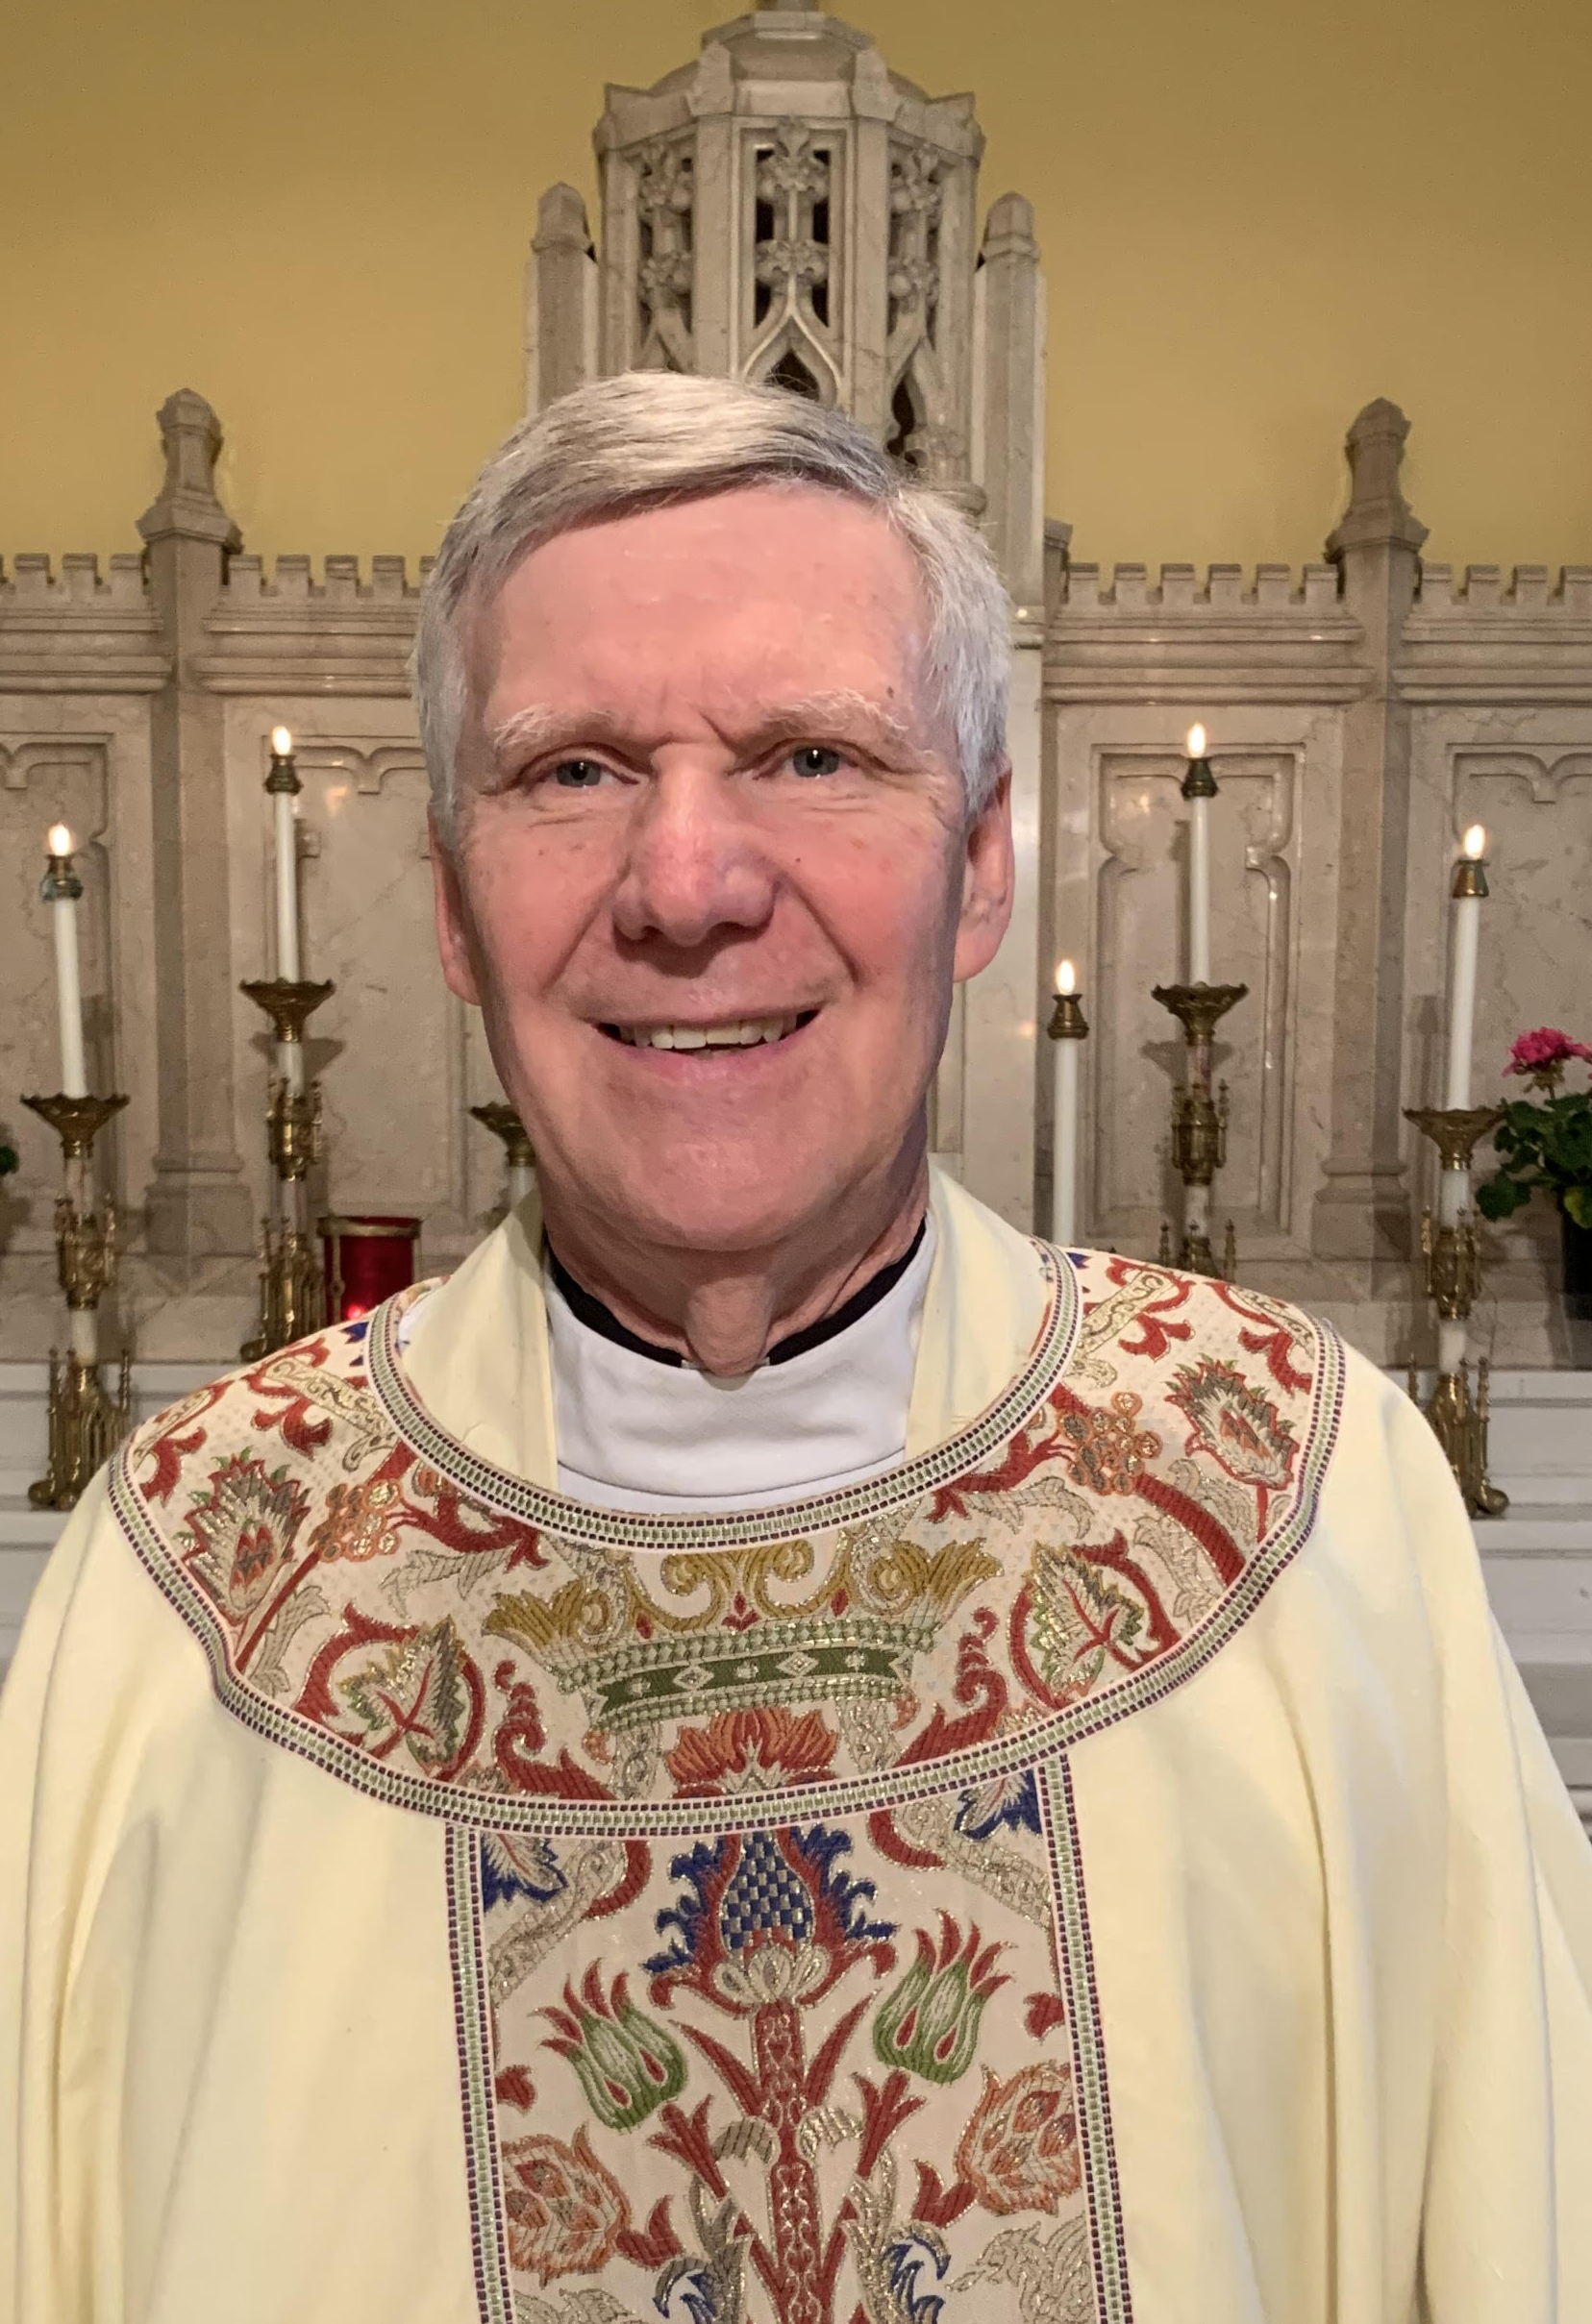 Zareski unnamed 1 - 'No greater vocation': Priest jubilarians grateful for blessings and surprises of ministry to God's people